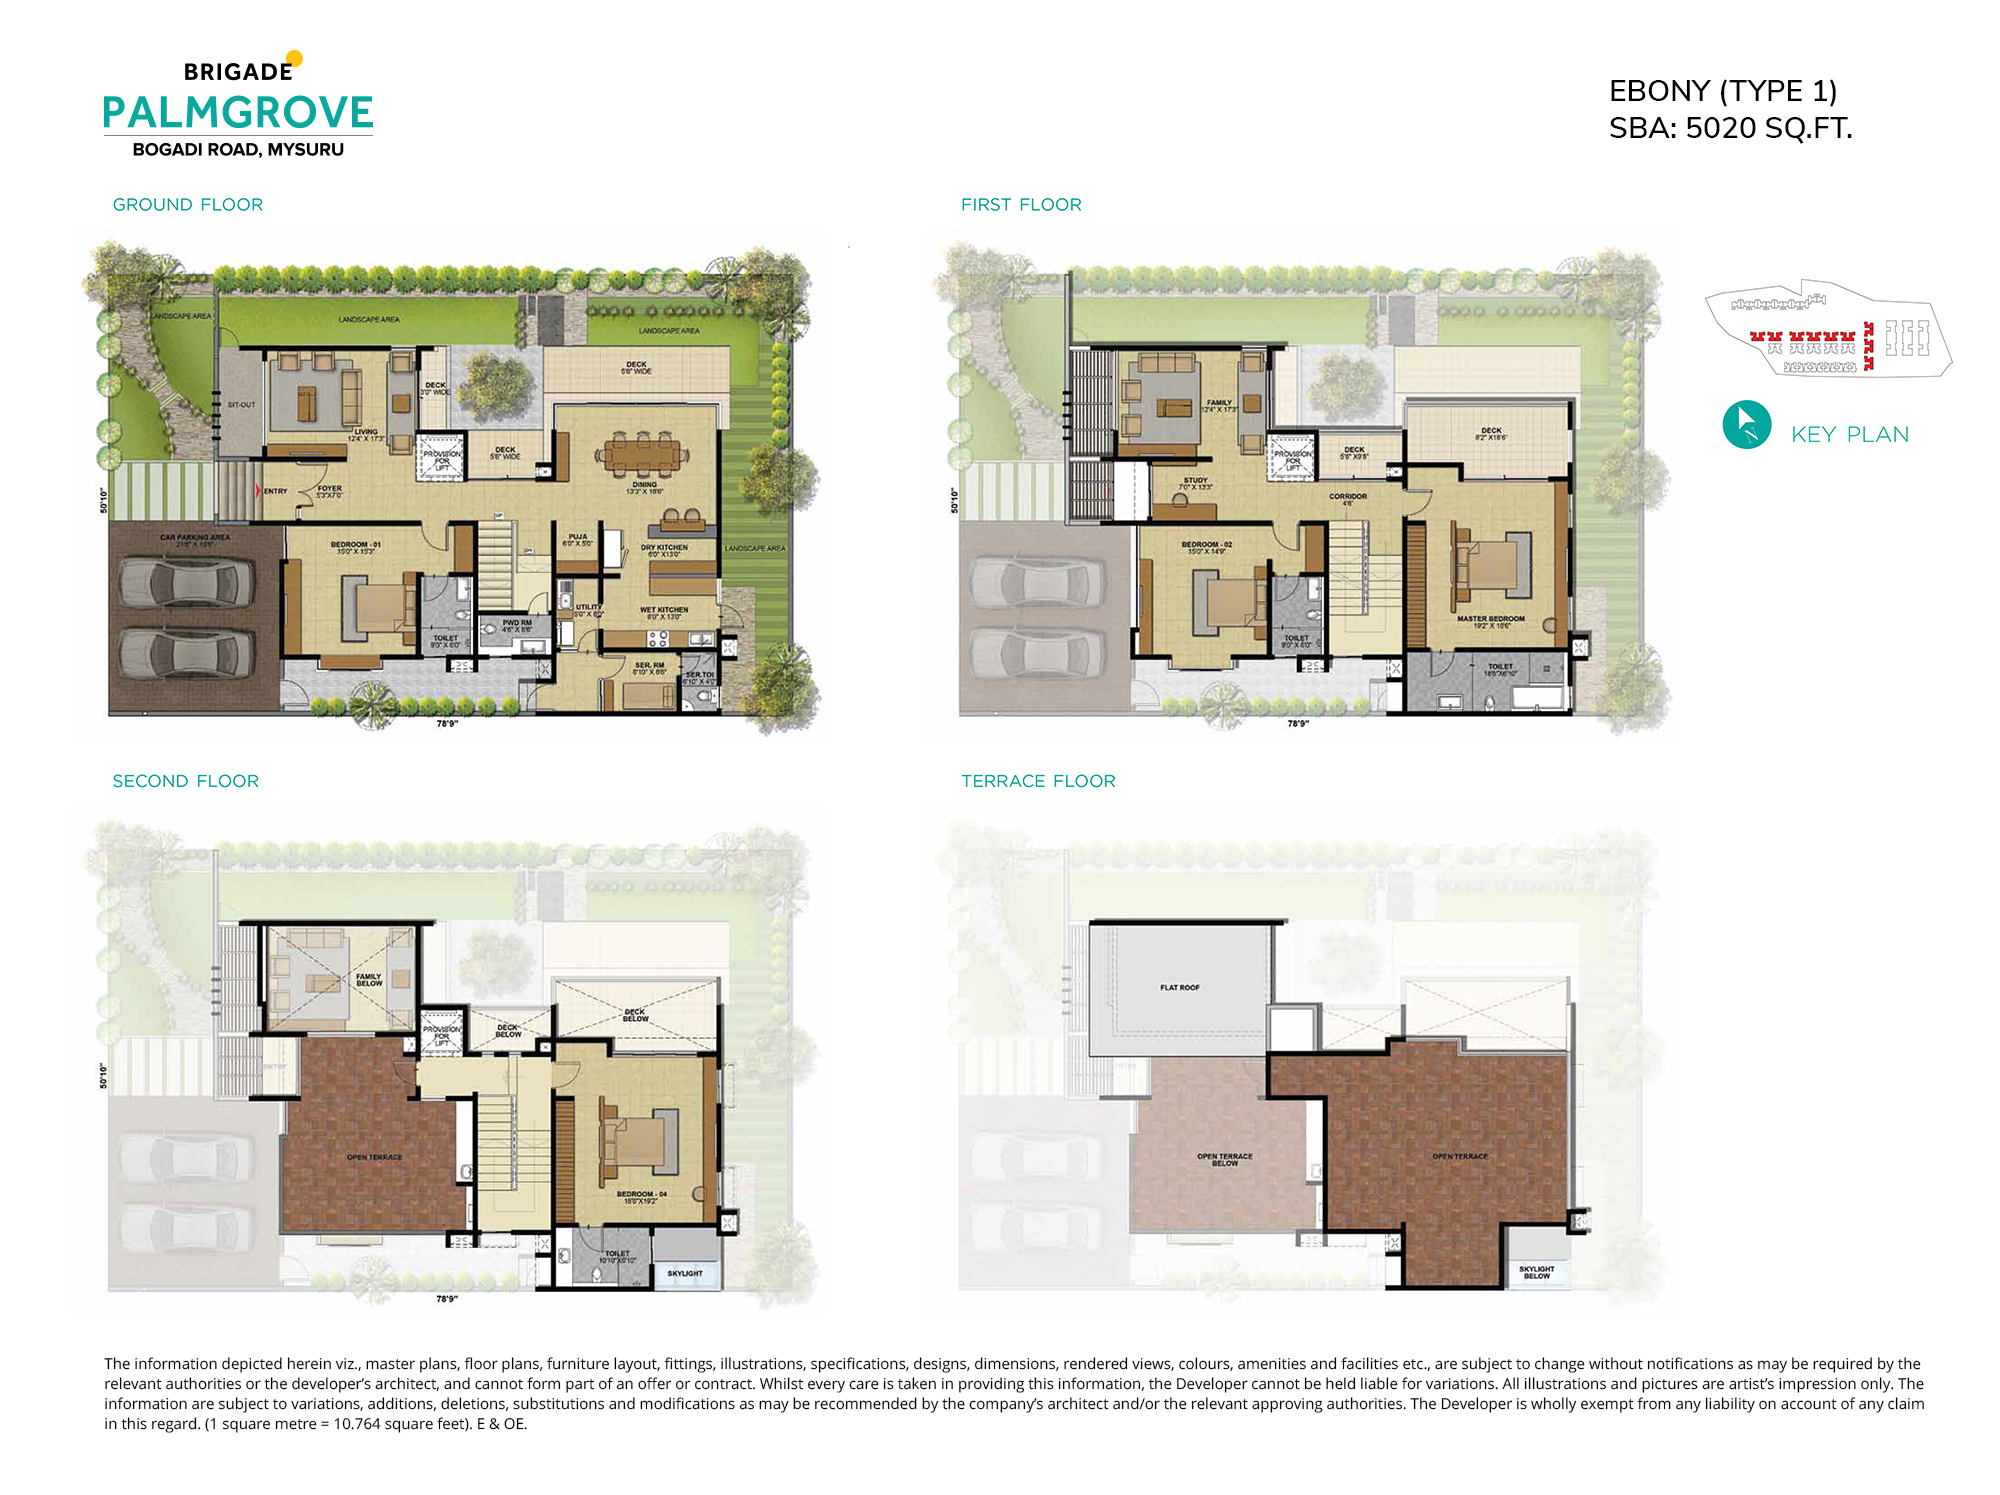 palmgrove-floor-plans-ebony